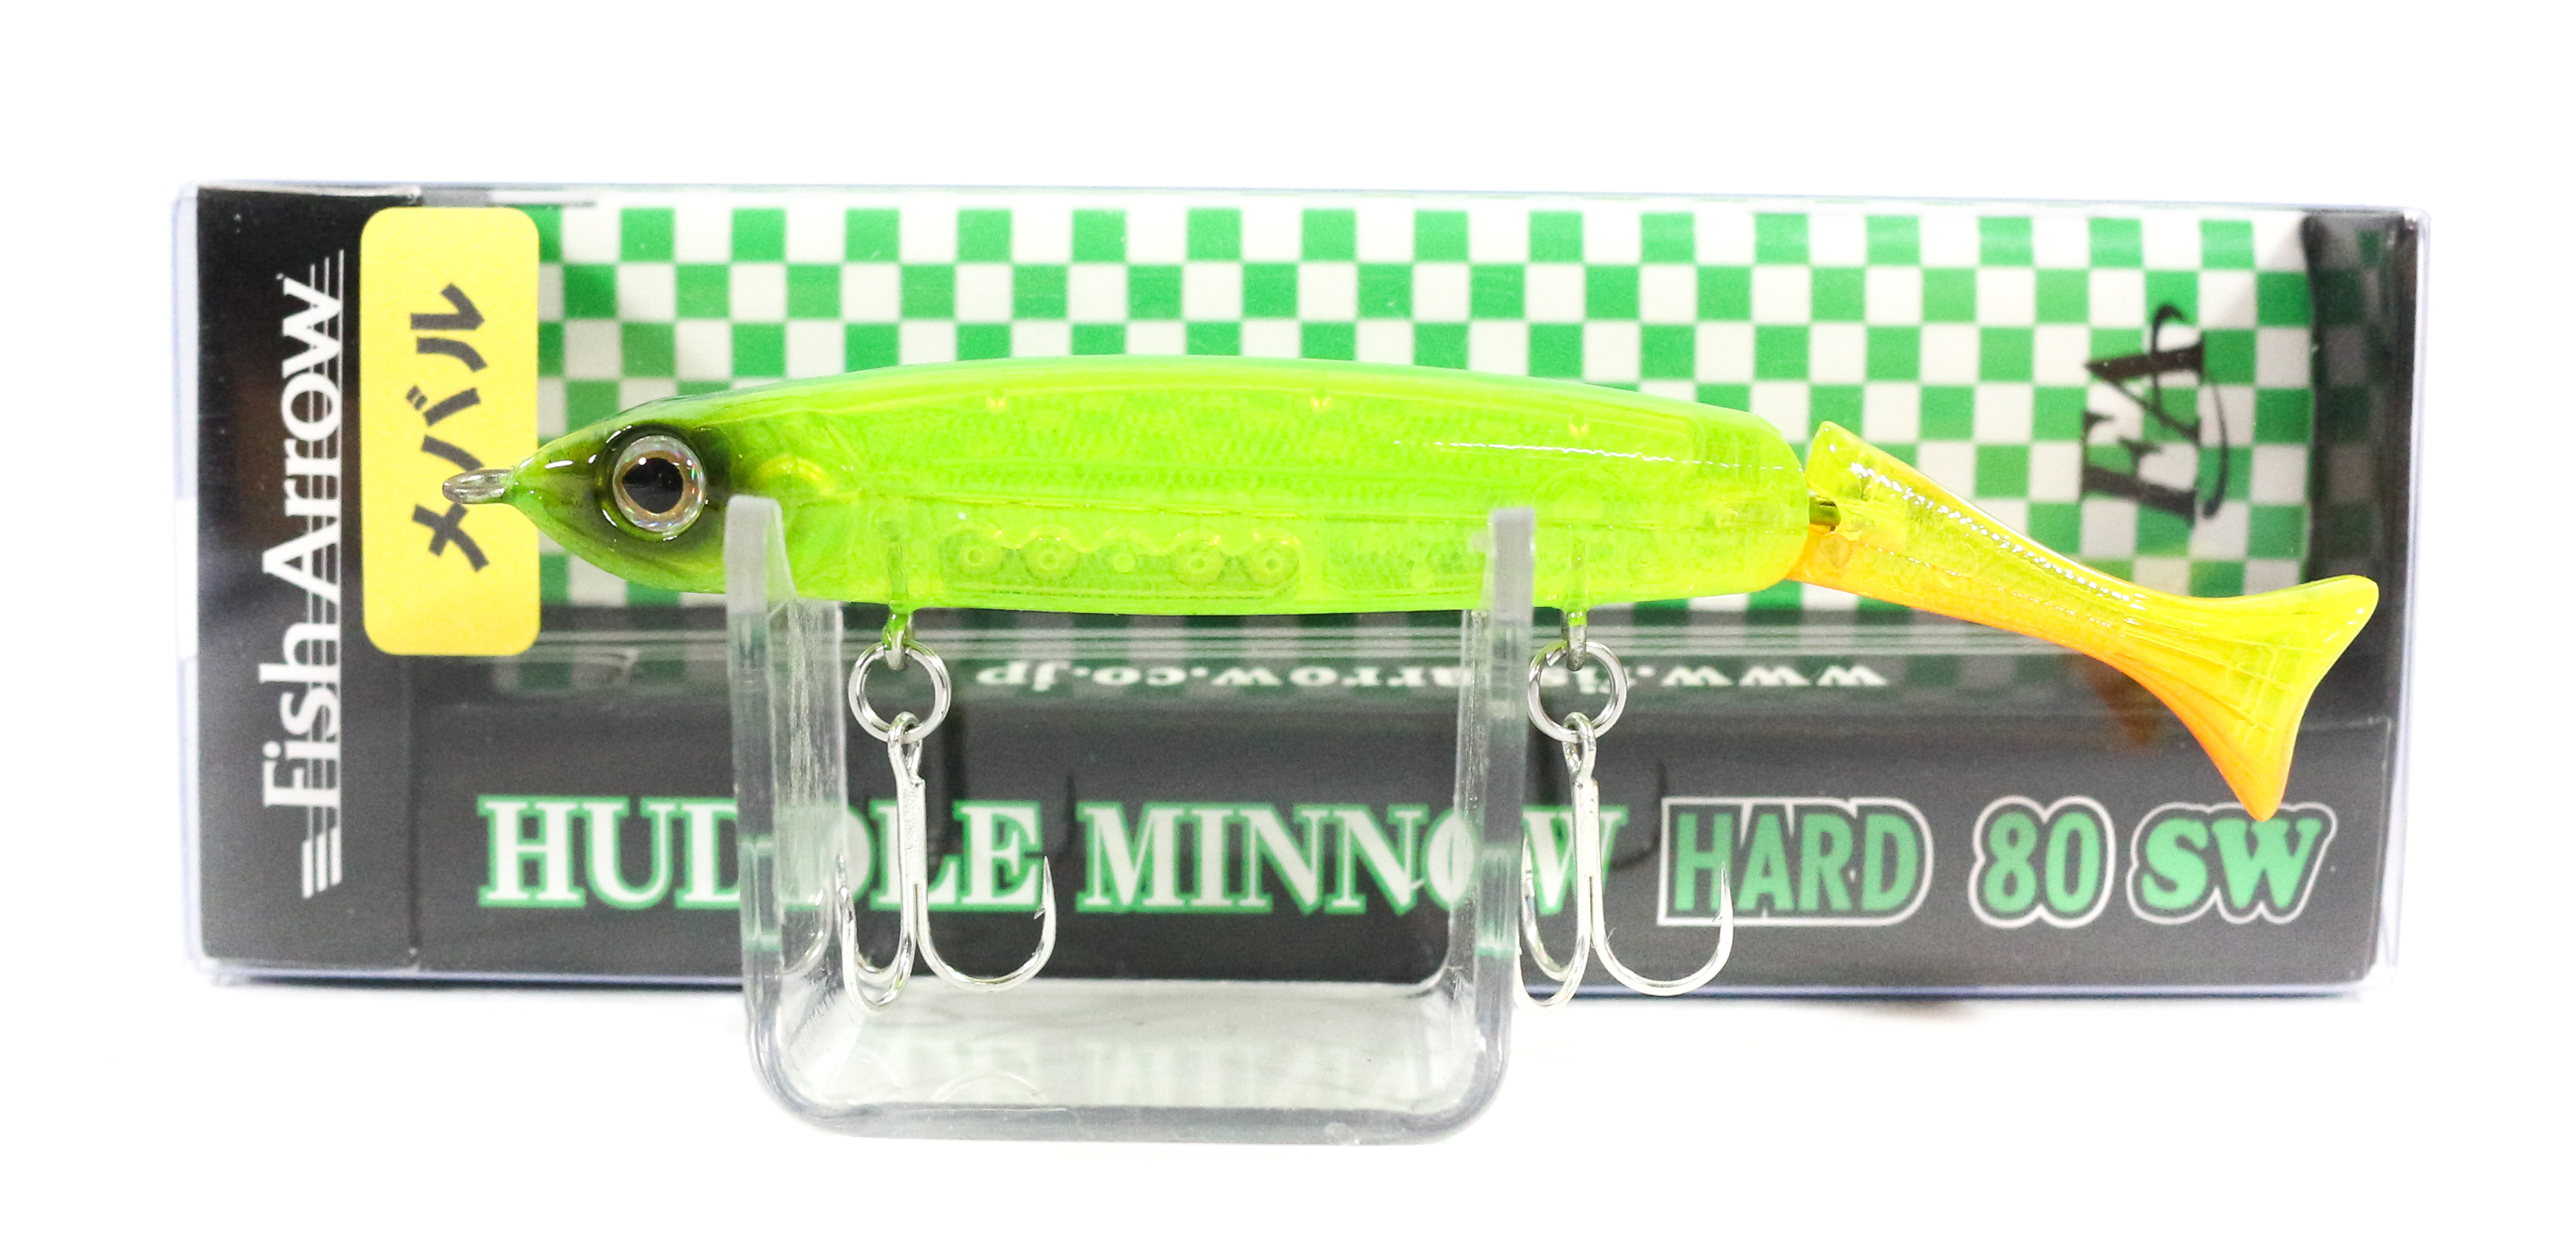 Fish Arrow Huddle Minnow Hard 80 SW Sinking Lure #M04 (0141)